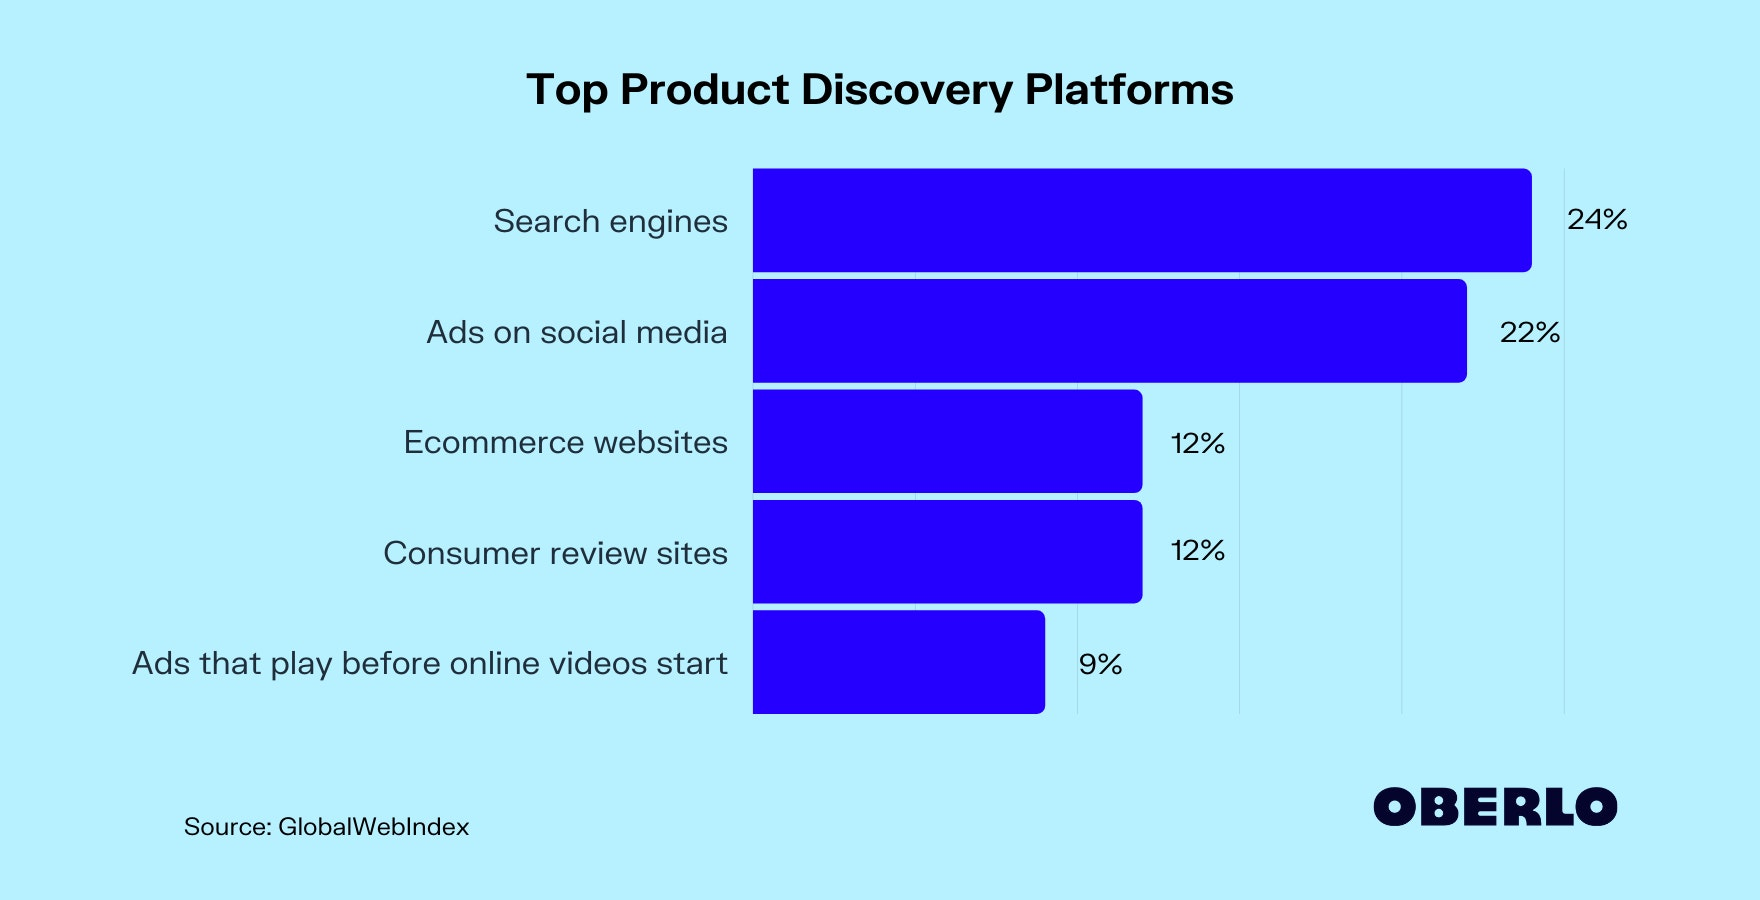 Top Product Discovery Platforms